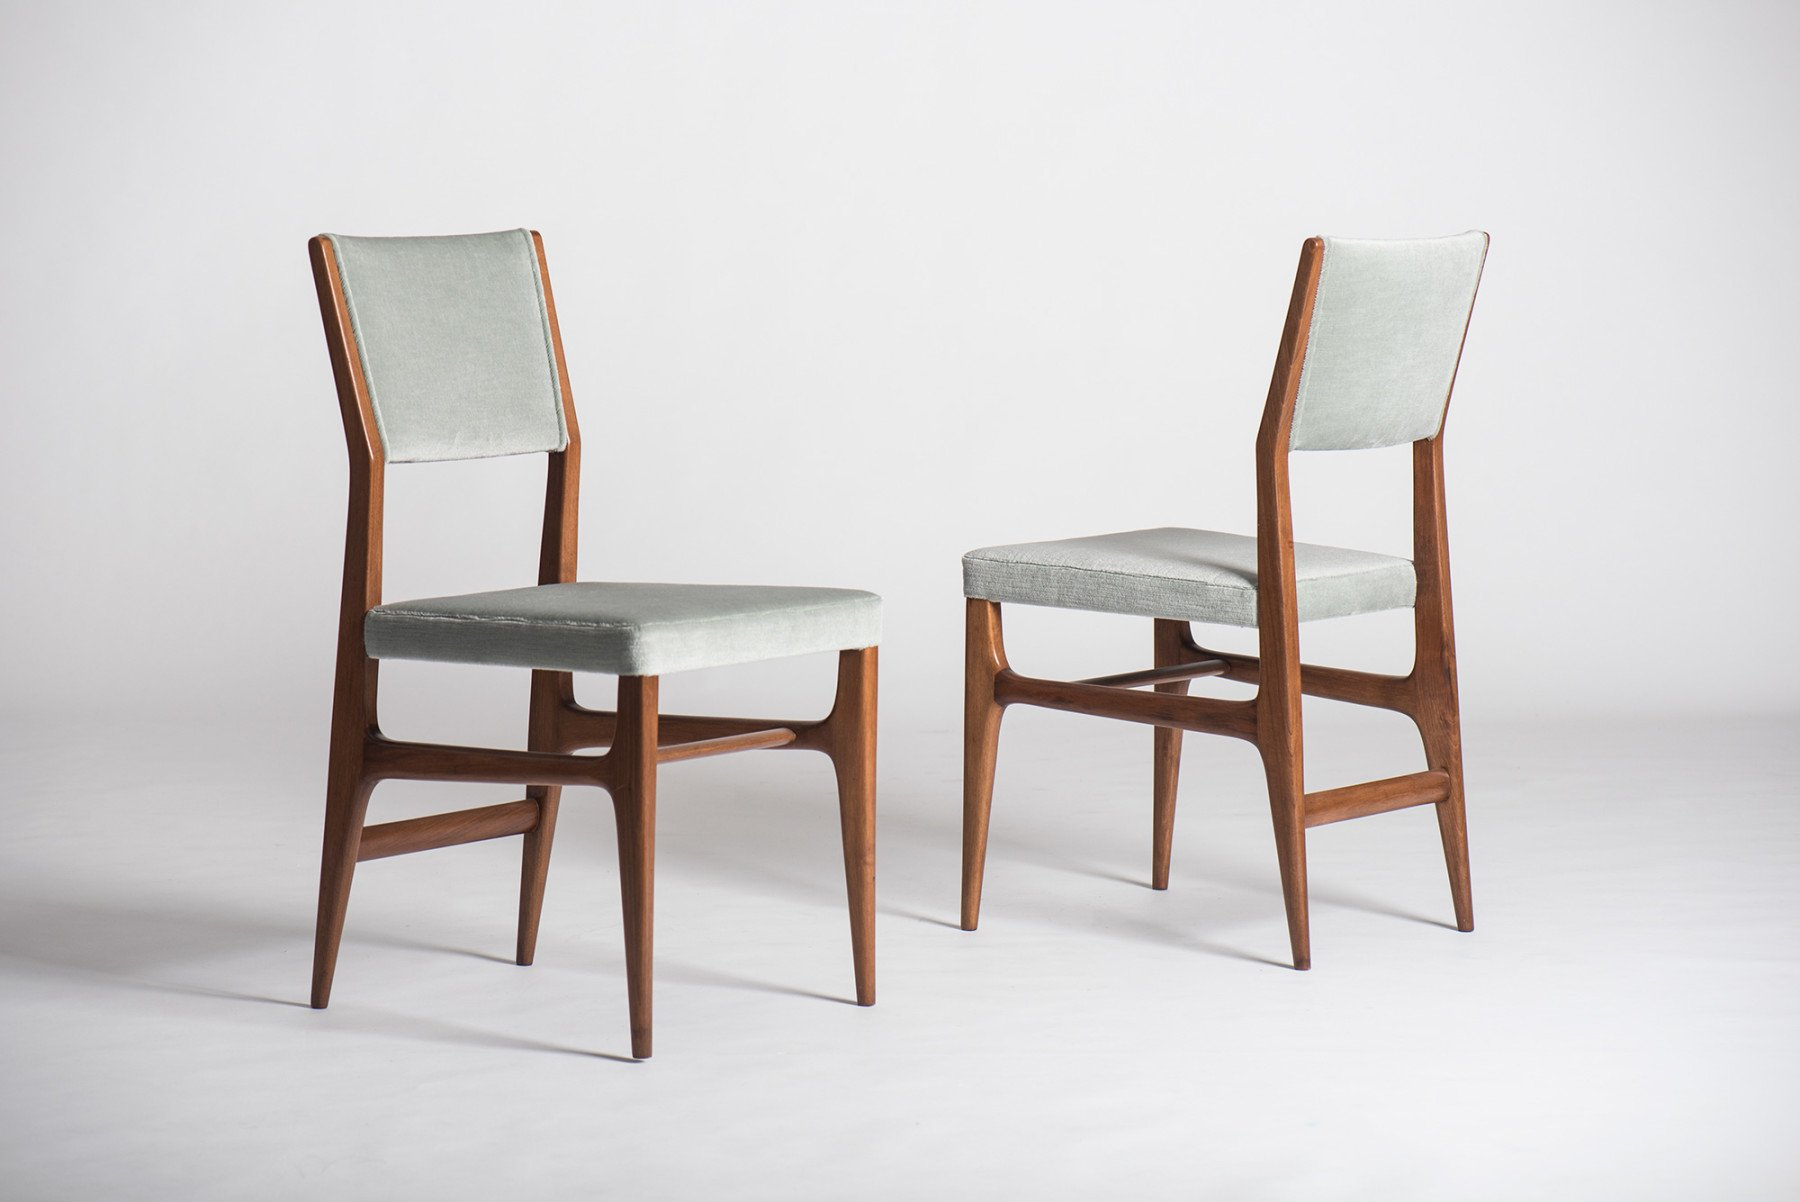 Dining Chair Set Of 6 Gio Ponti Set Of 6 Dining Chairs Model 111 Italian Design At